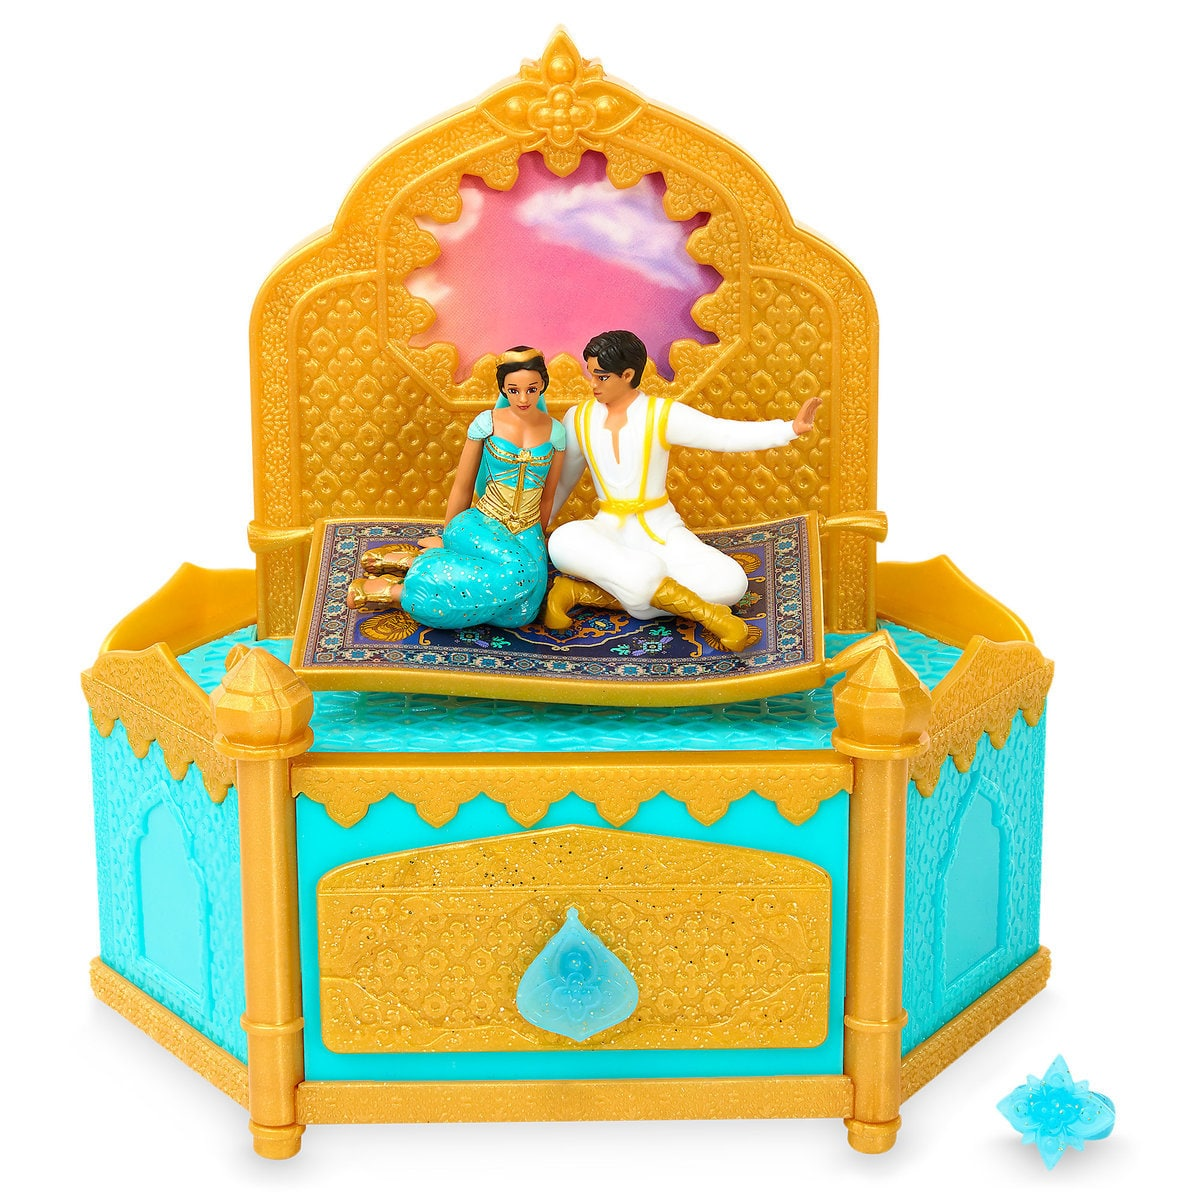 I can show you the world with this Aladdin jewelry box for kids | Top 25 Disney Gift Ideas for Toddlers featured by top US Disney blogger, Marcie and the Mouse